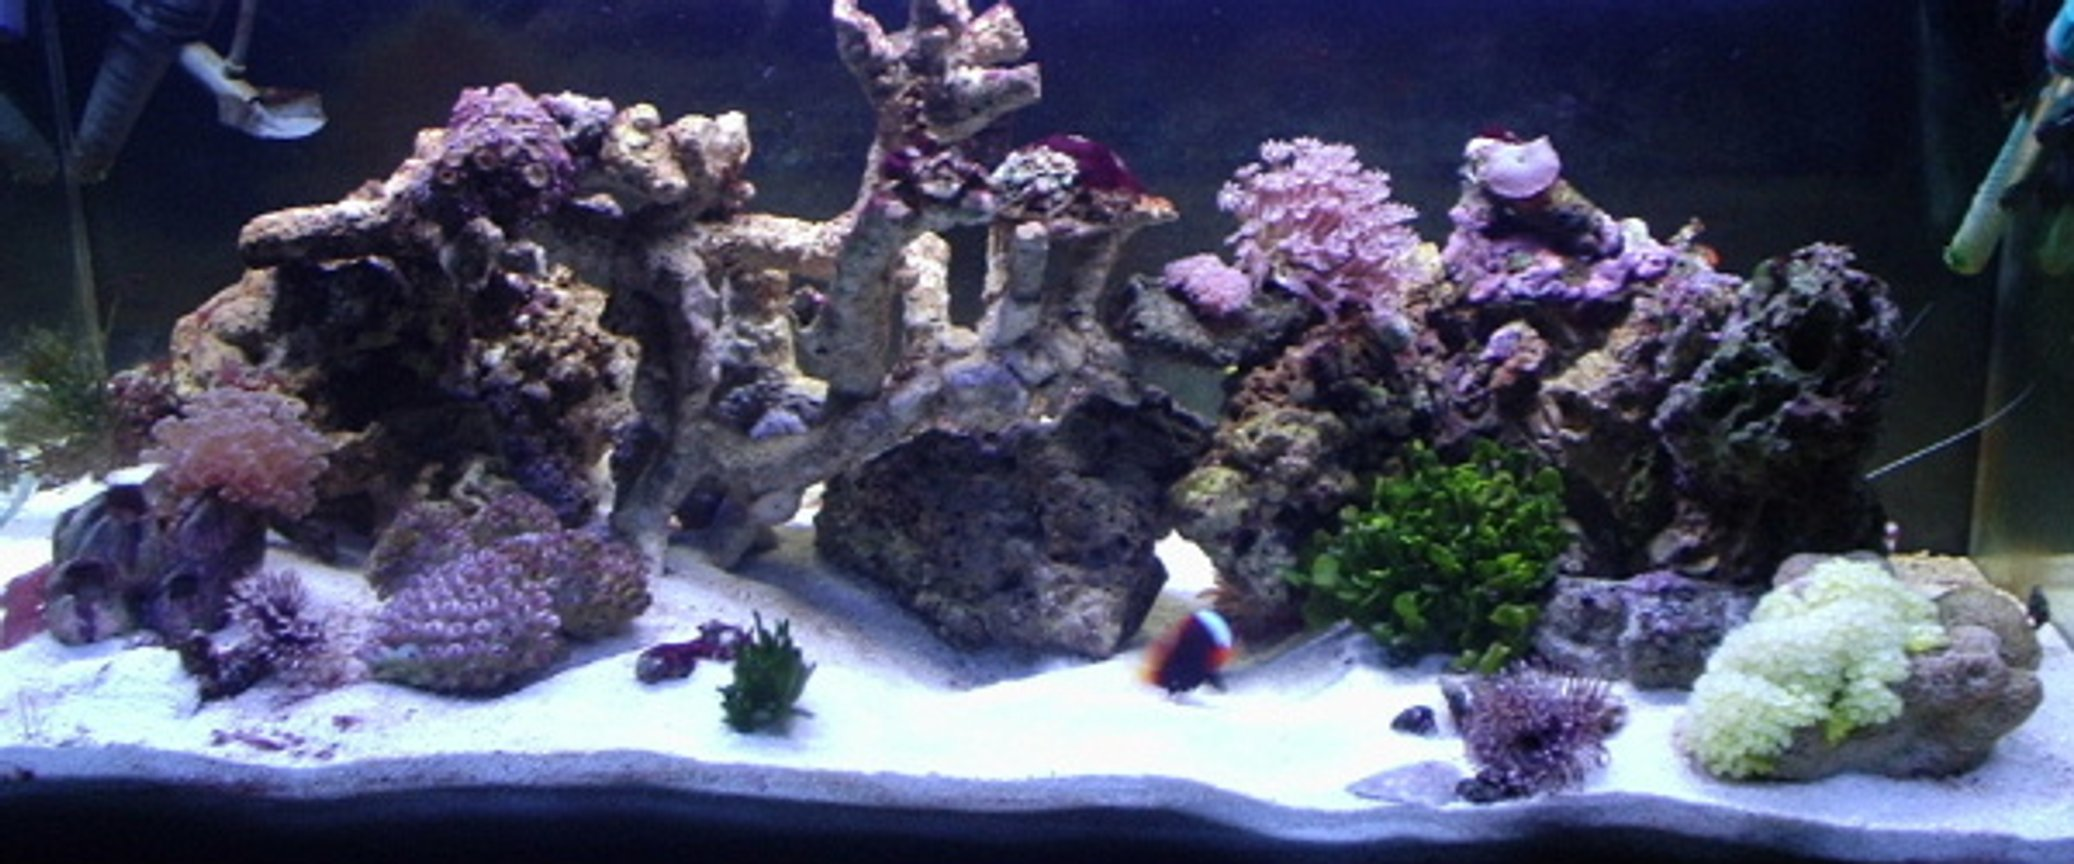 reef tank (mostly live coral and fish) - 40 gallon